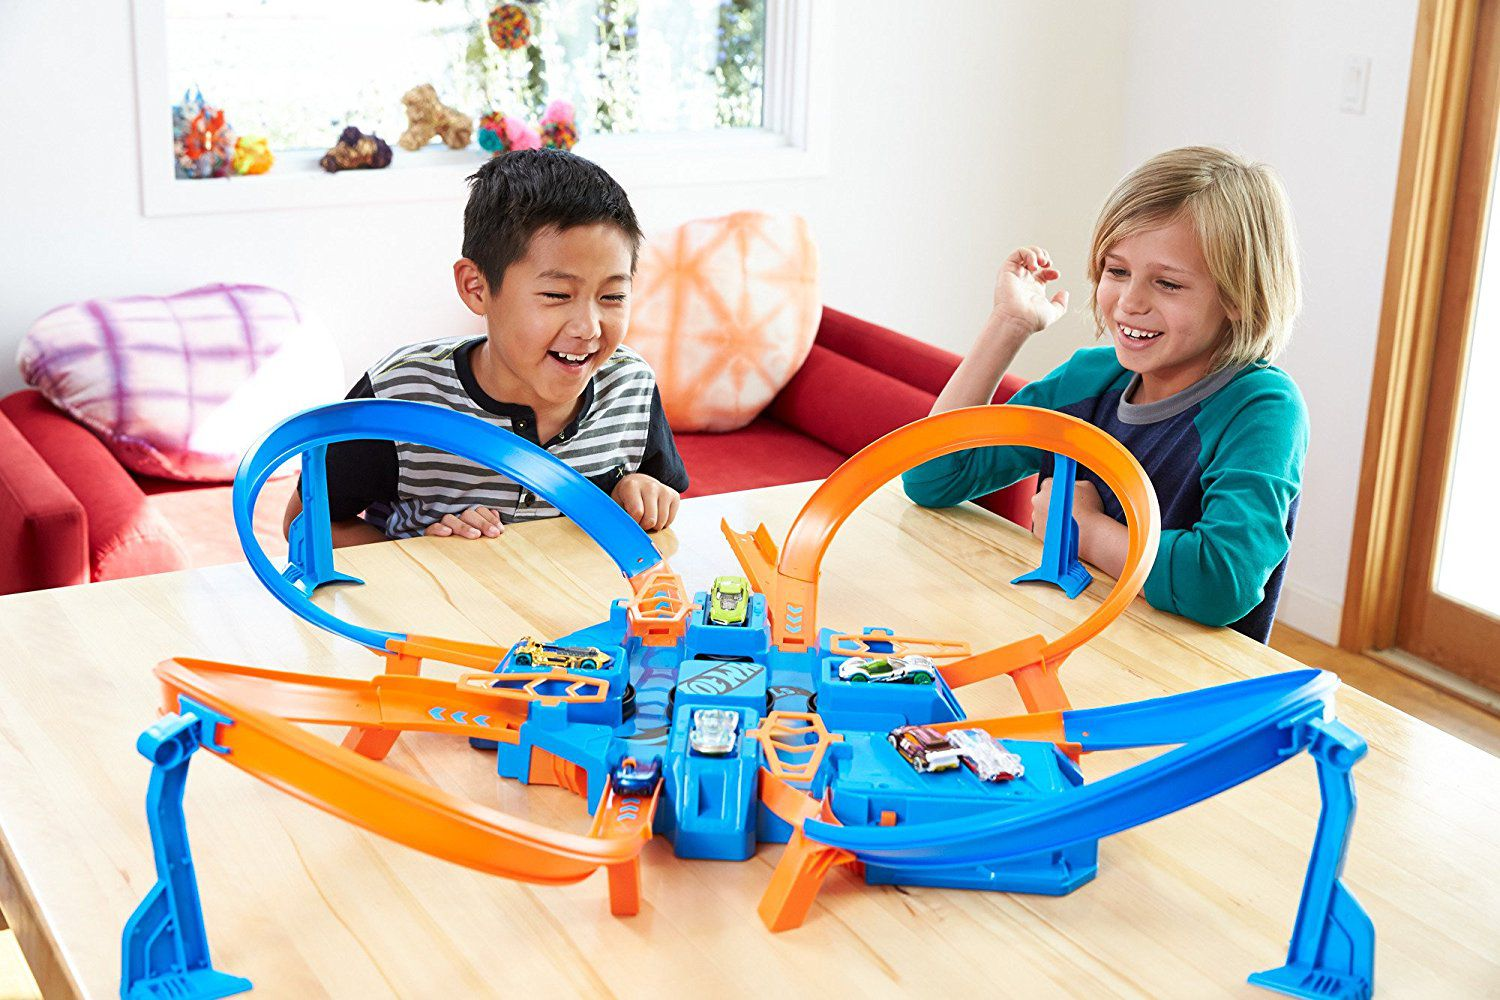 The 24 Best Ts For 6 Year Old Boys In